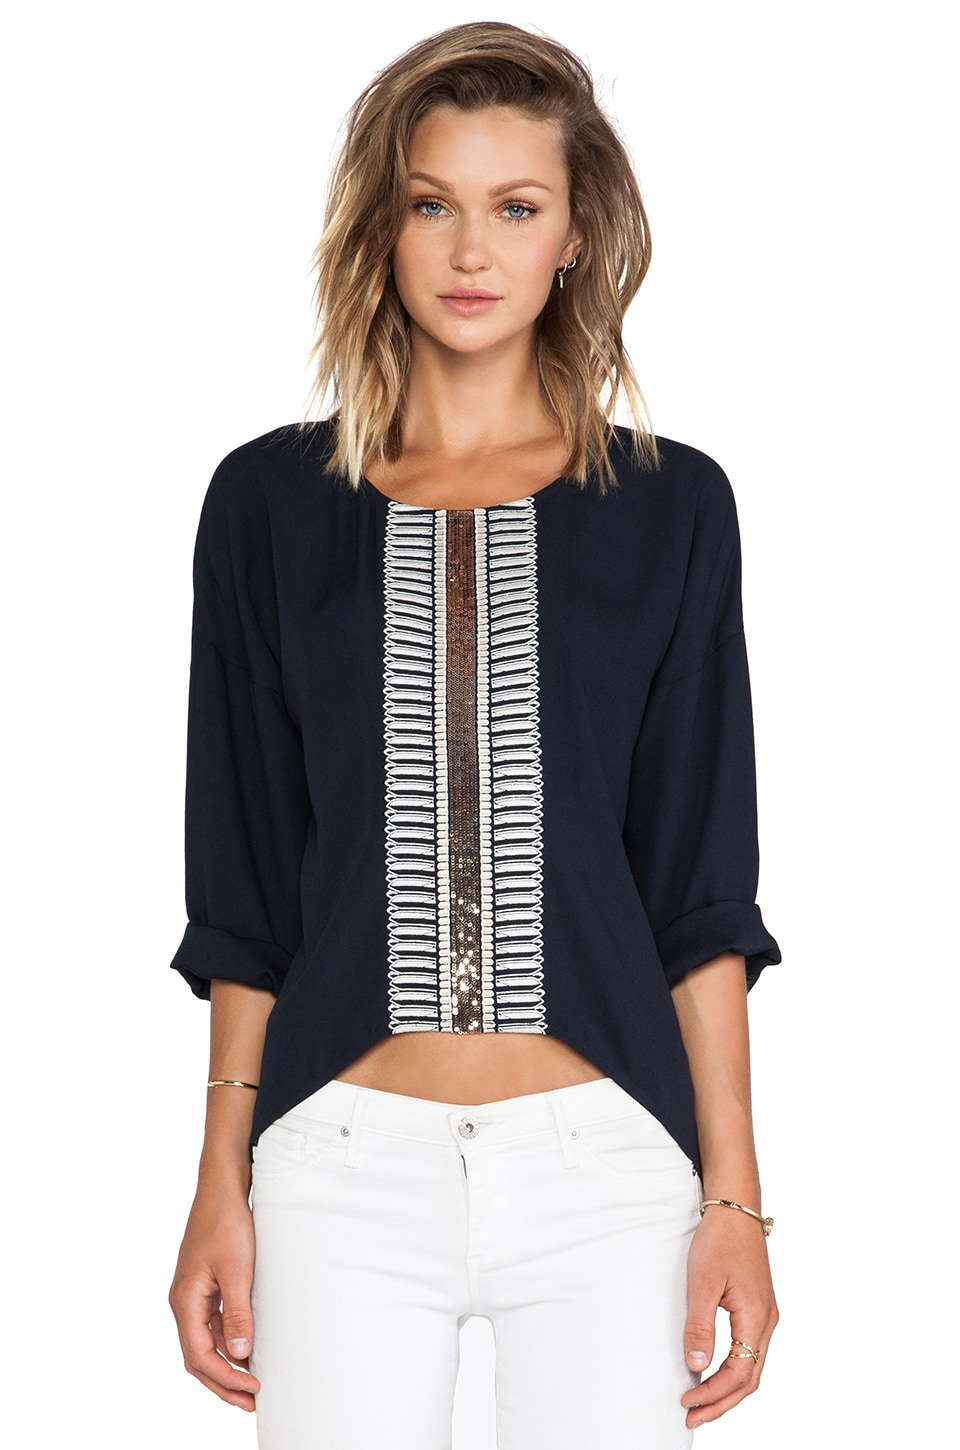 Sass & Bide On The Spot Pullover in French Navy